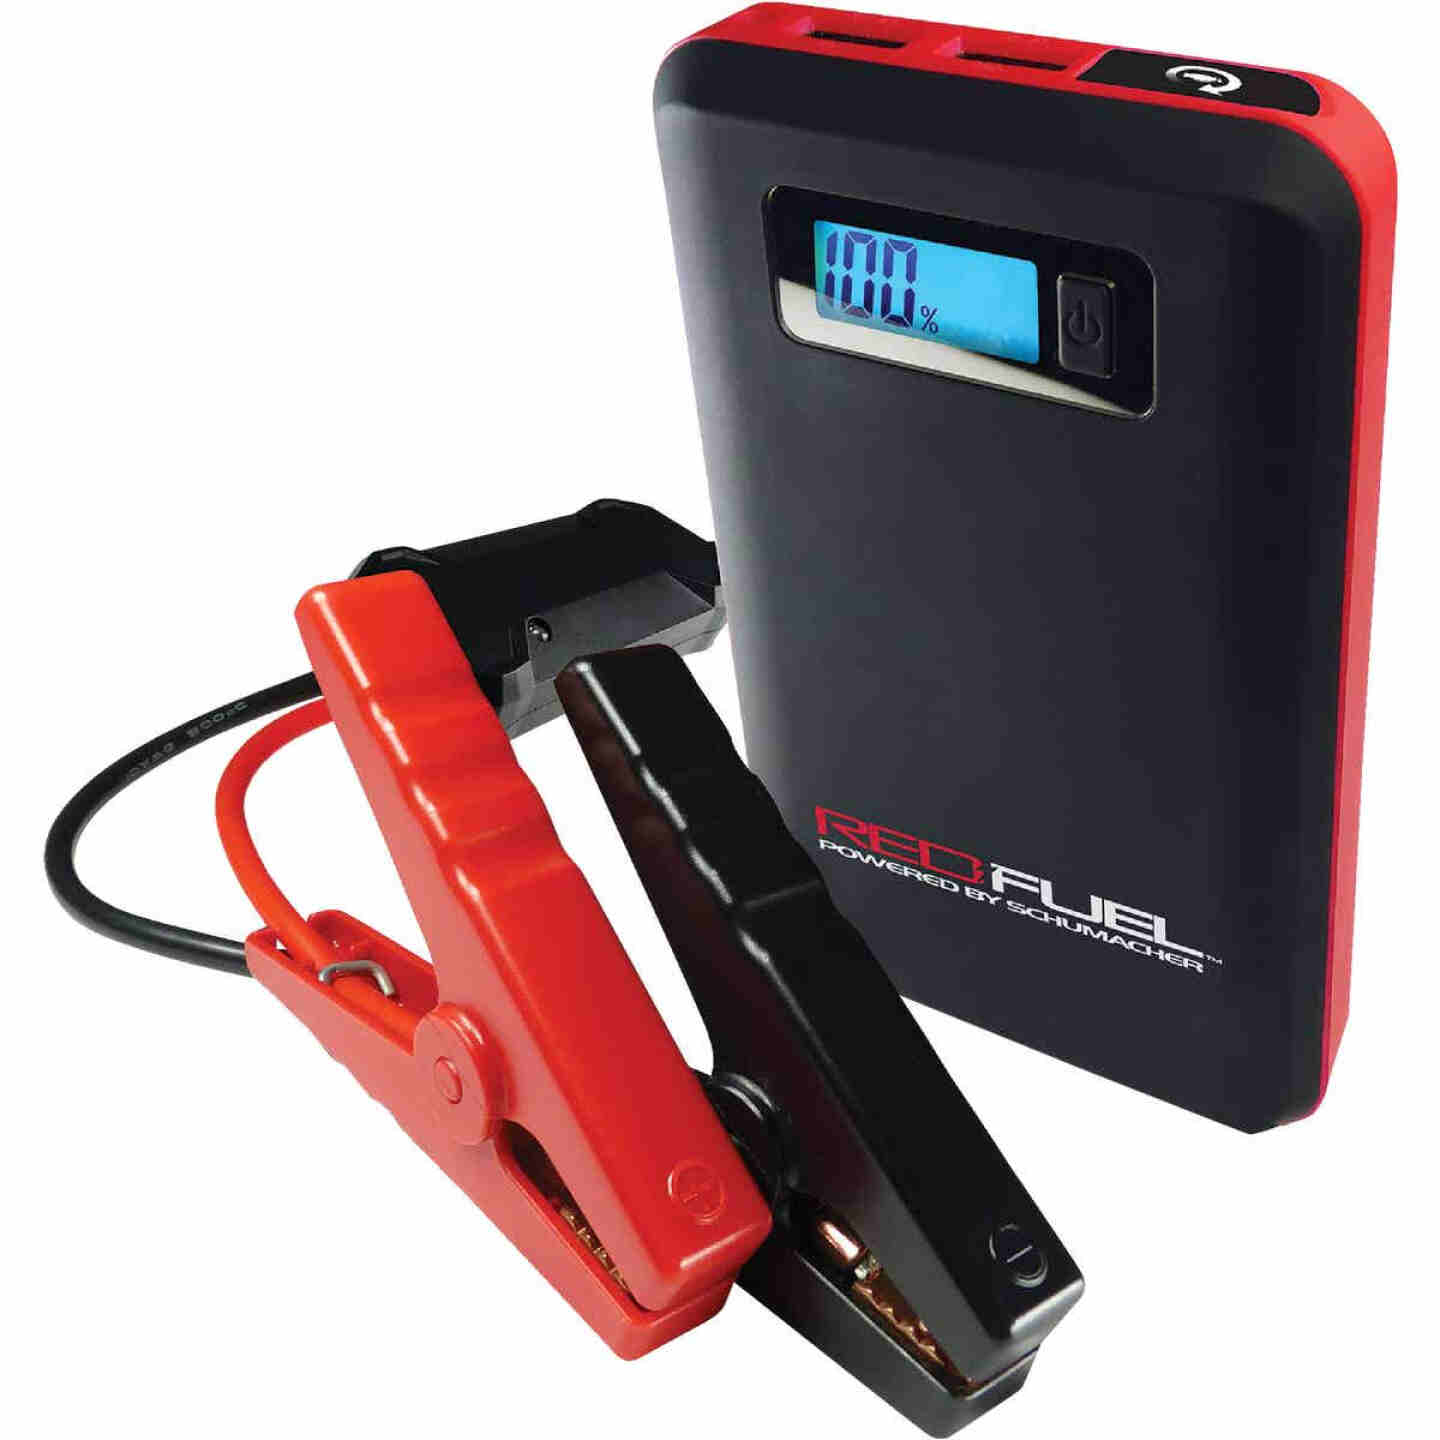 Schumacher Red Fuel 400a Multi-Function Jump Start System Image 1